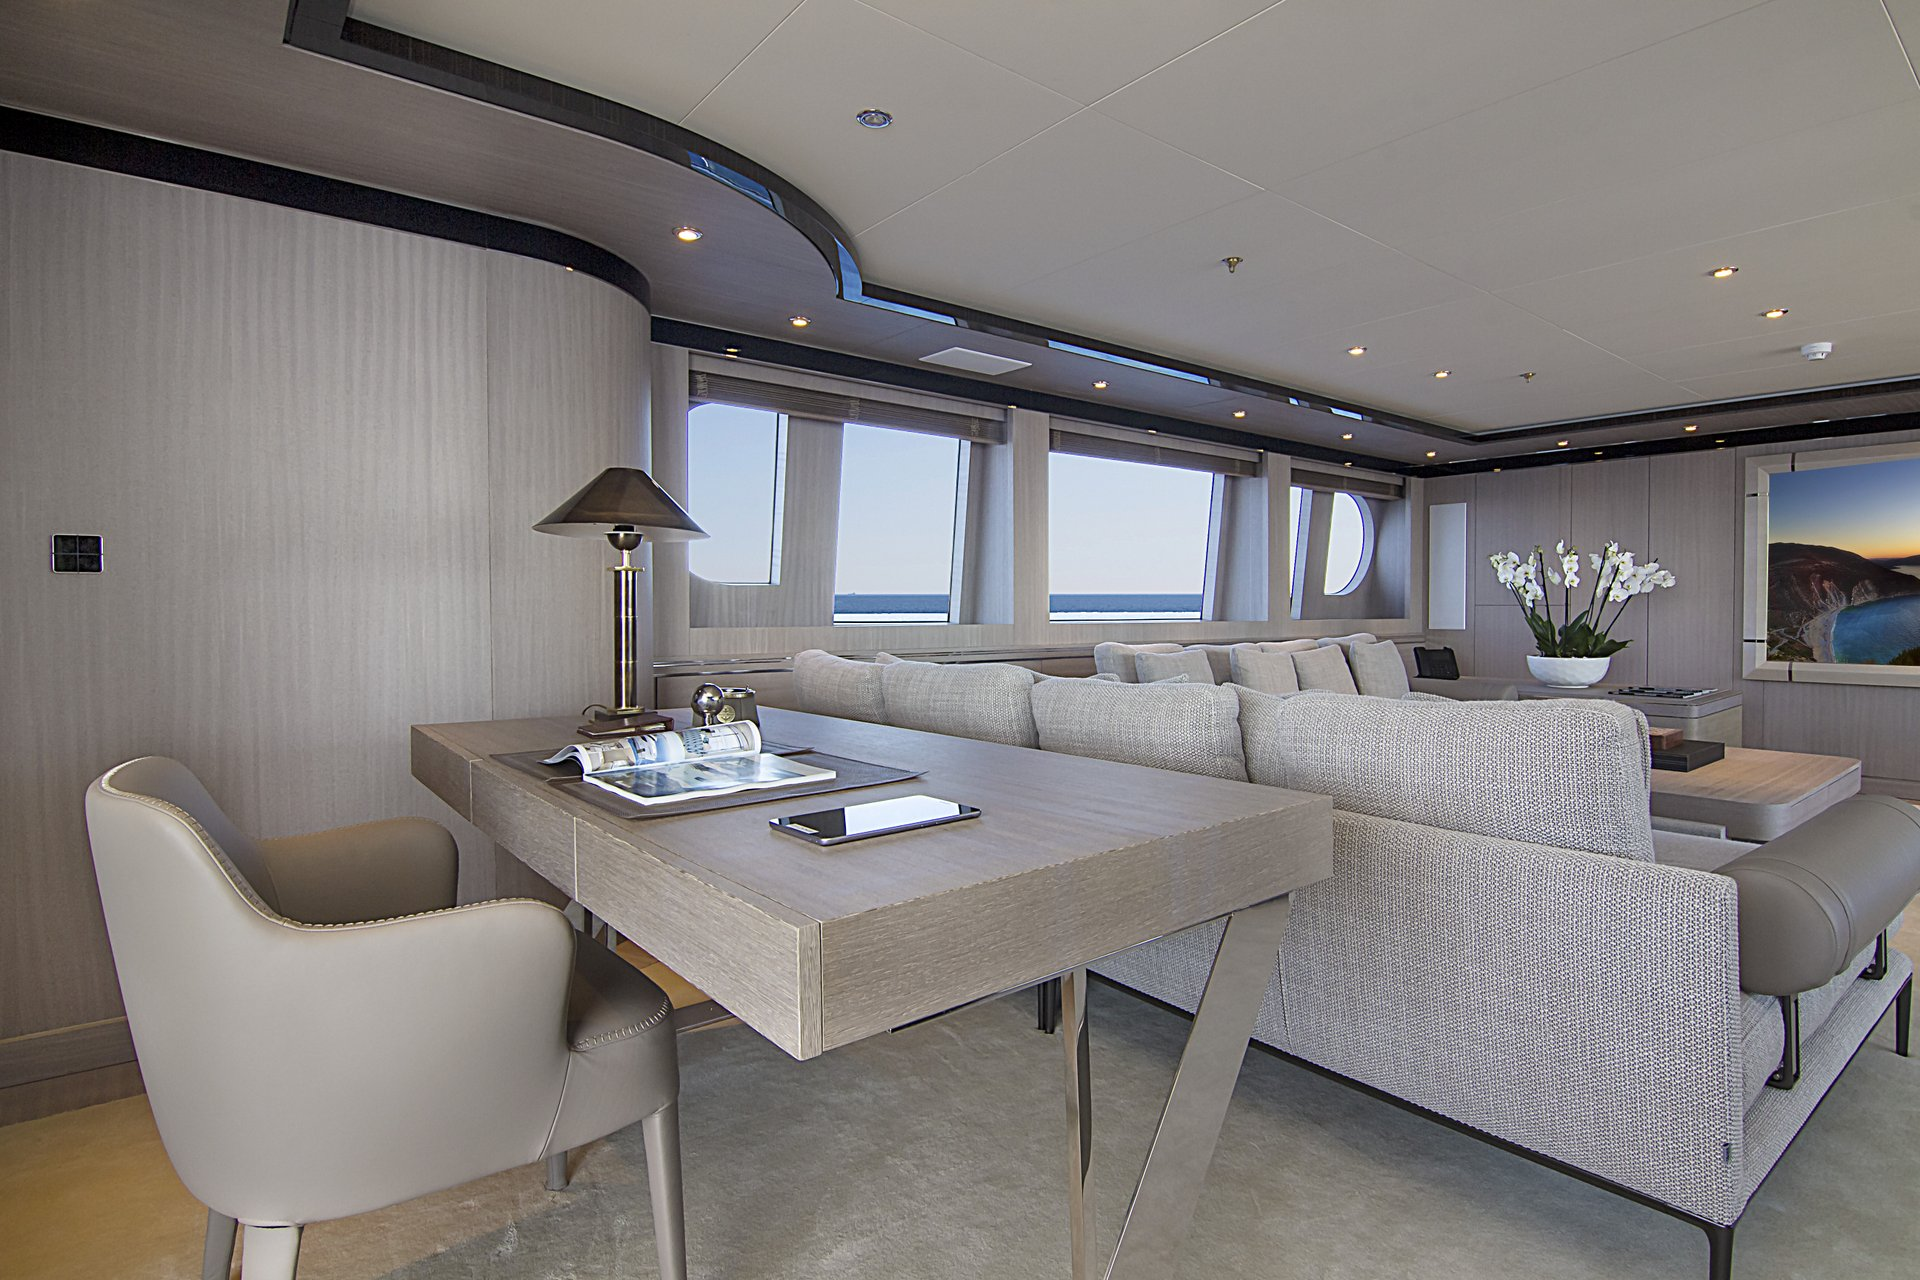 m/y invader yacht for charter lounge desk